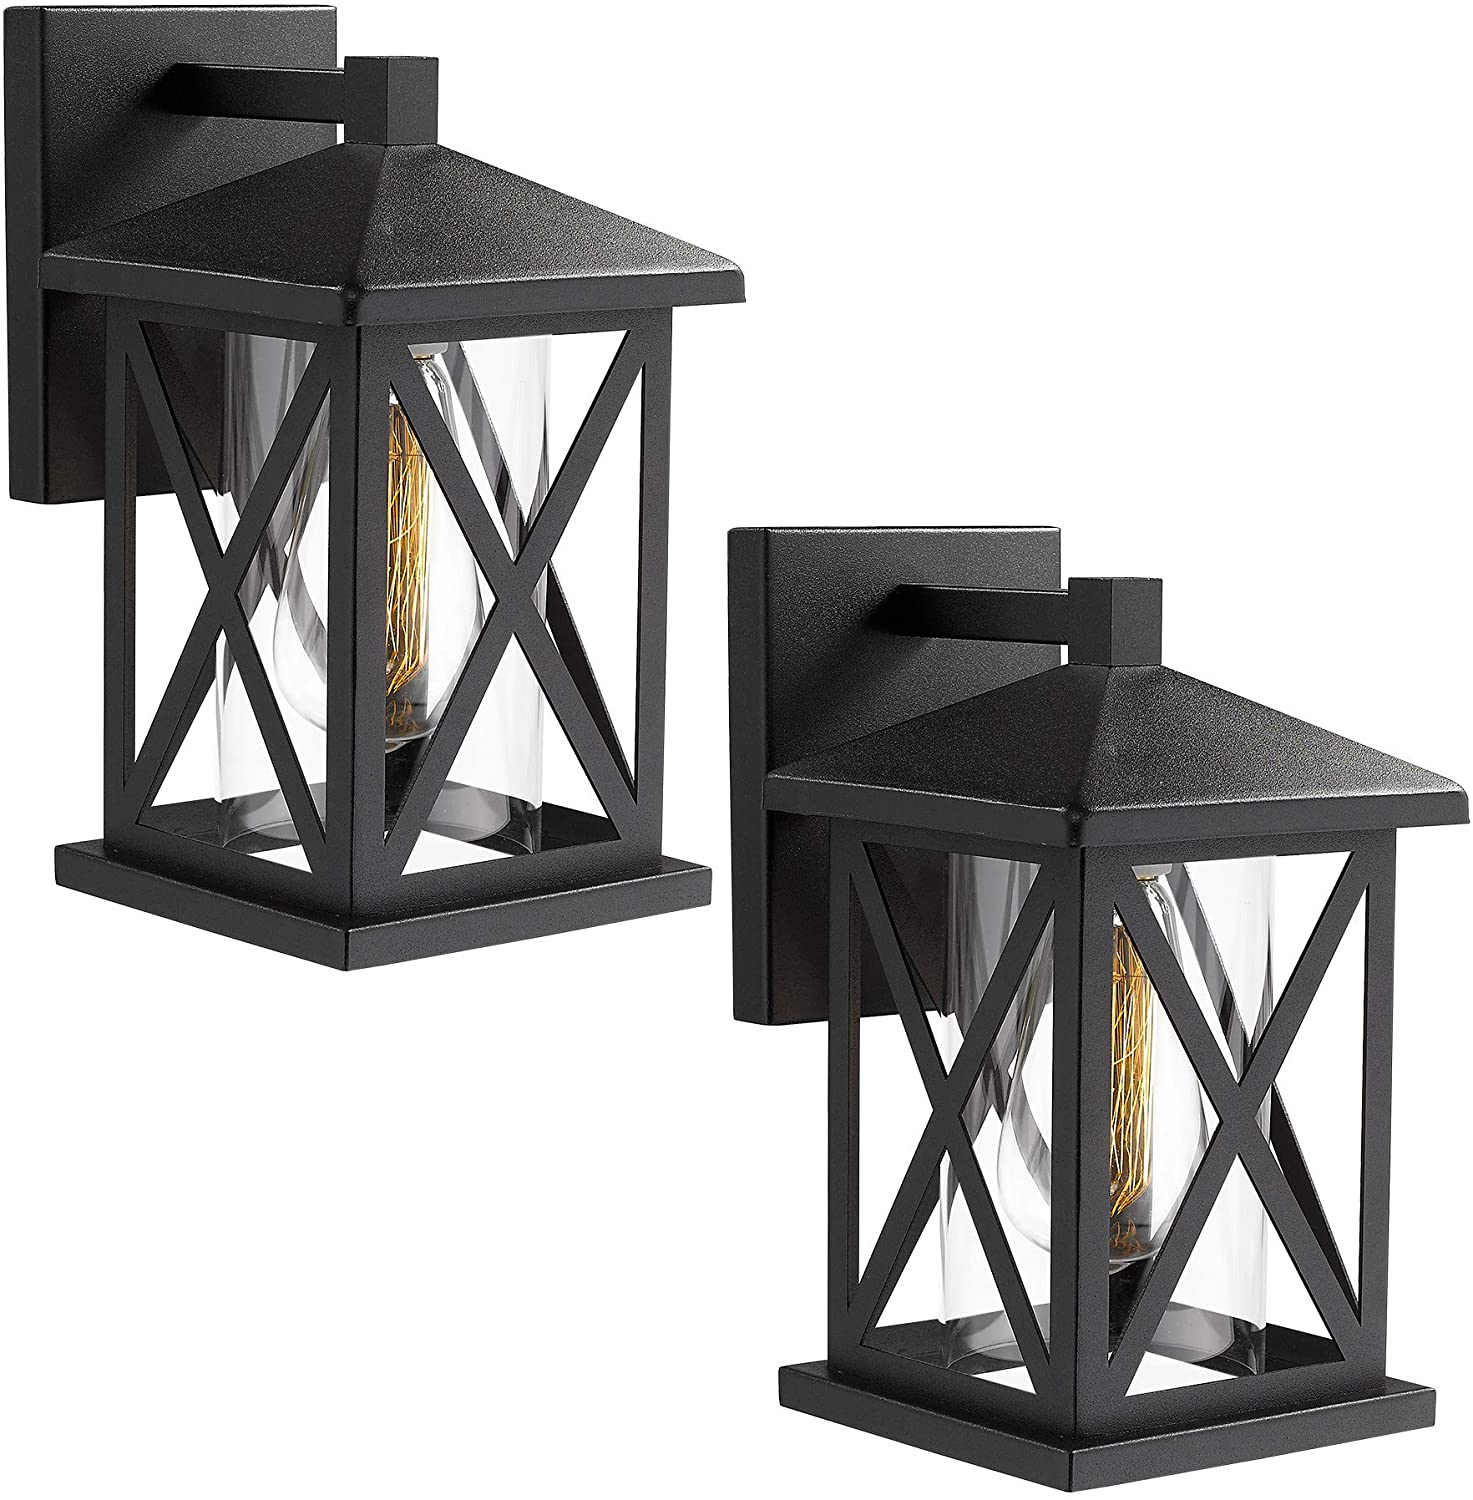 Outdoor wall sconce fixture